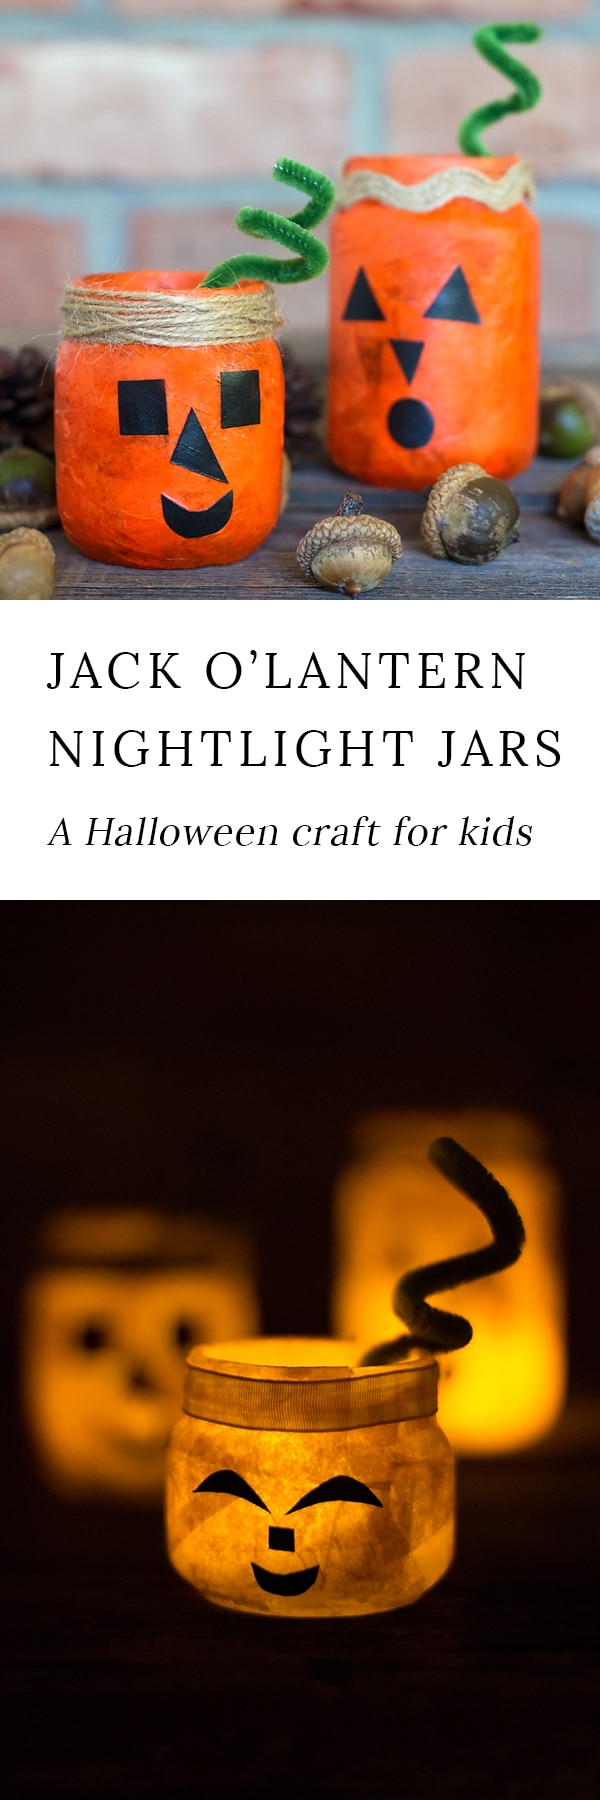 Kids of all ages will love creating a colorful and fun Jack O'Lantern Nightlight Jar for Halloween. This glowing Halloween craft is perfect for school or home.